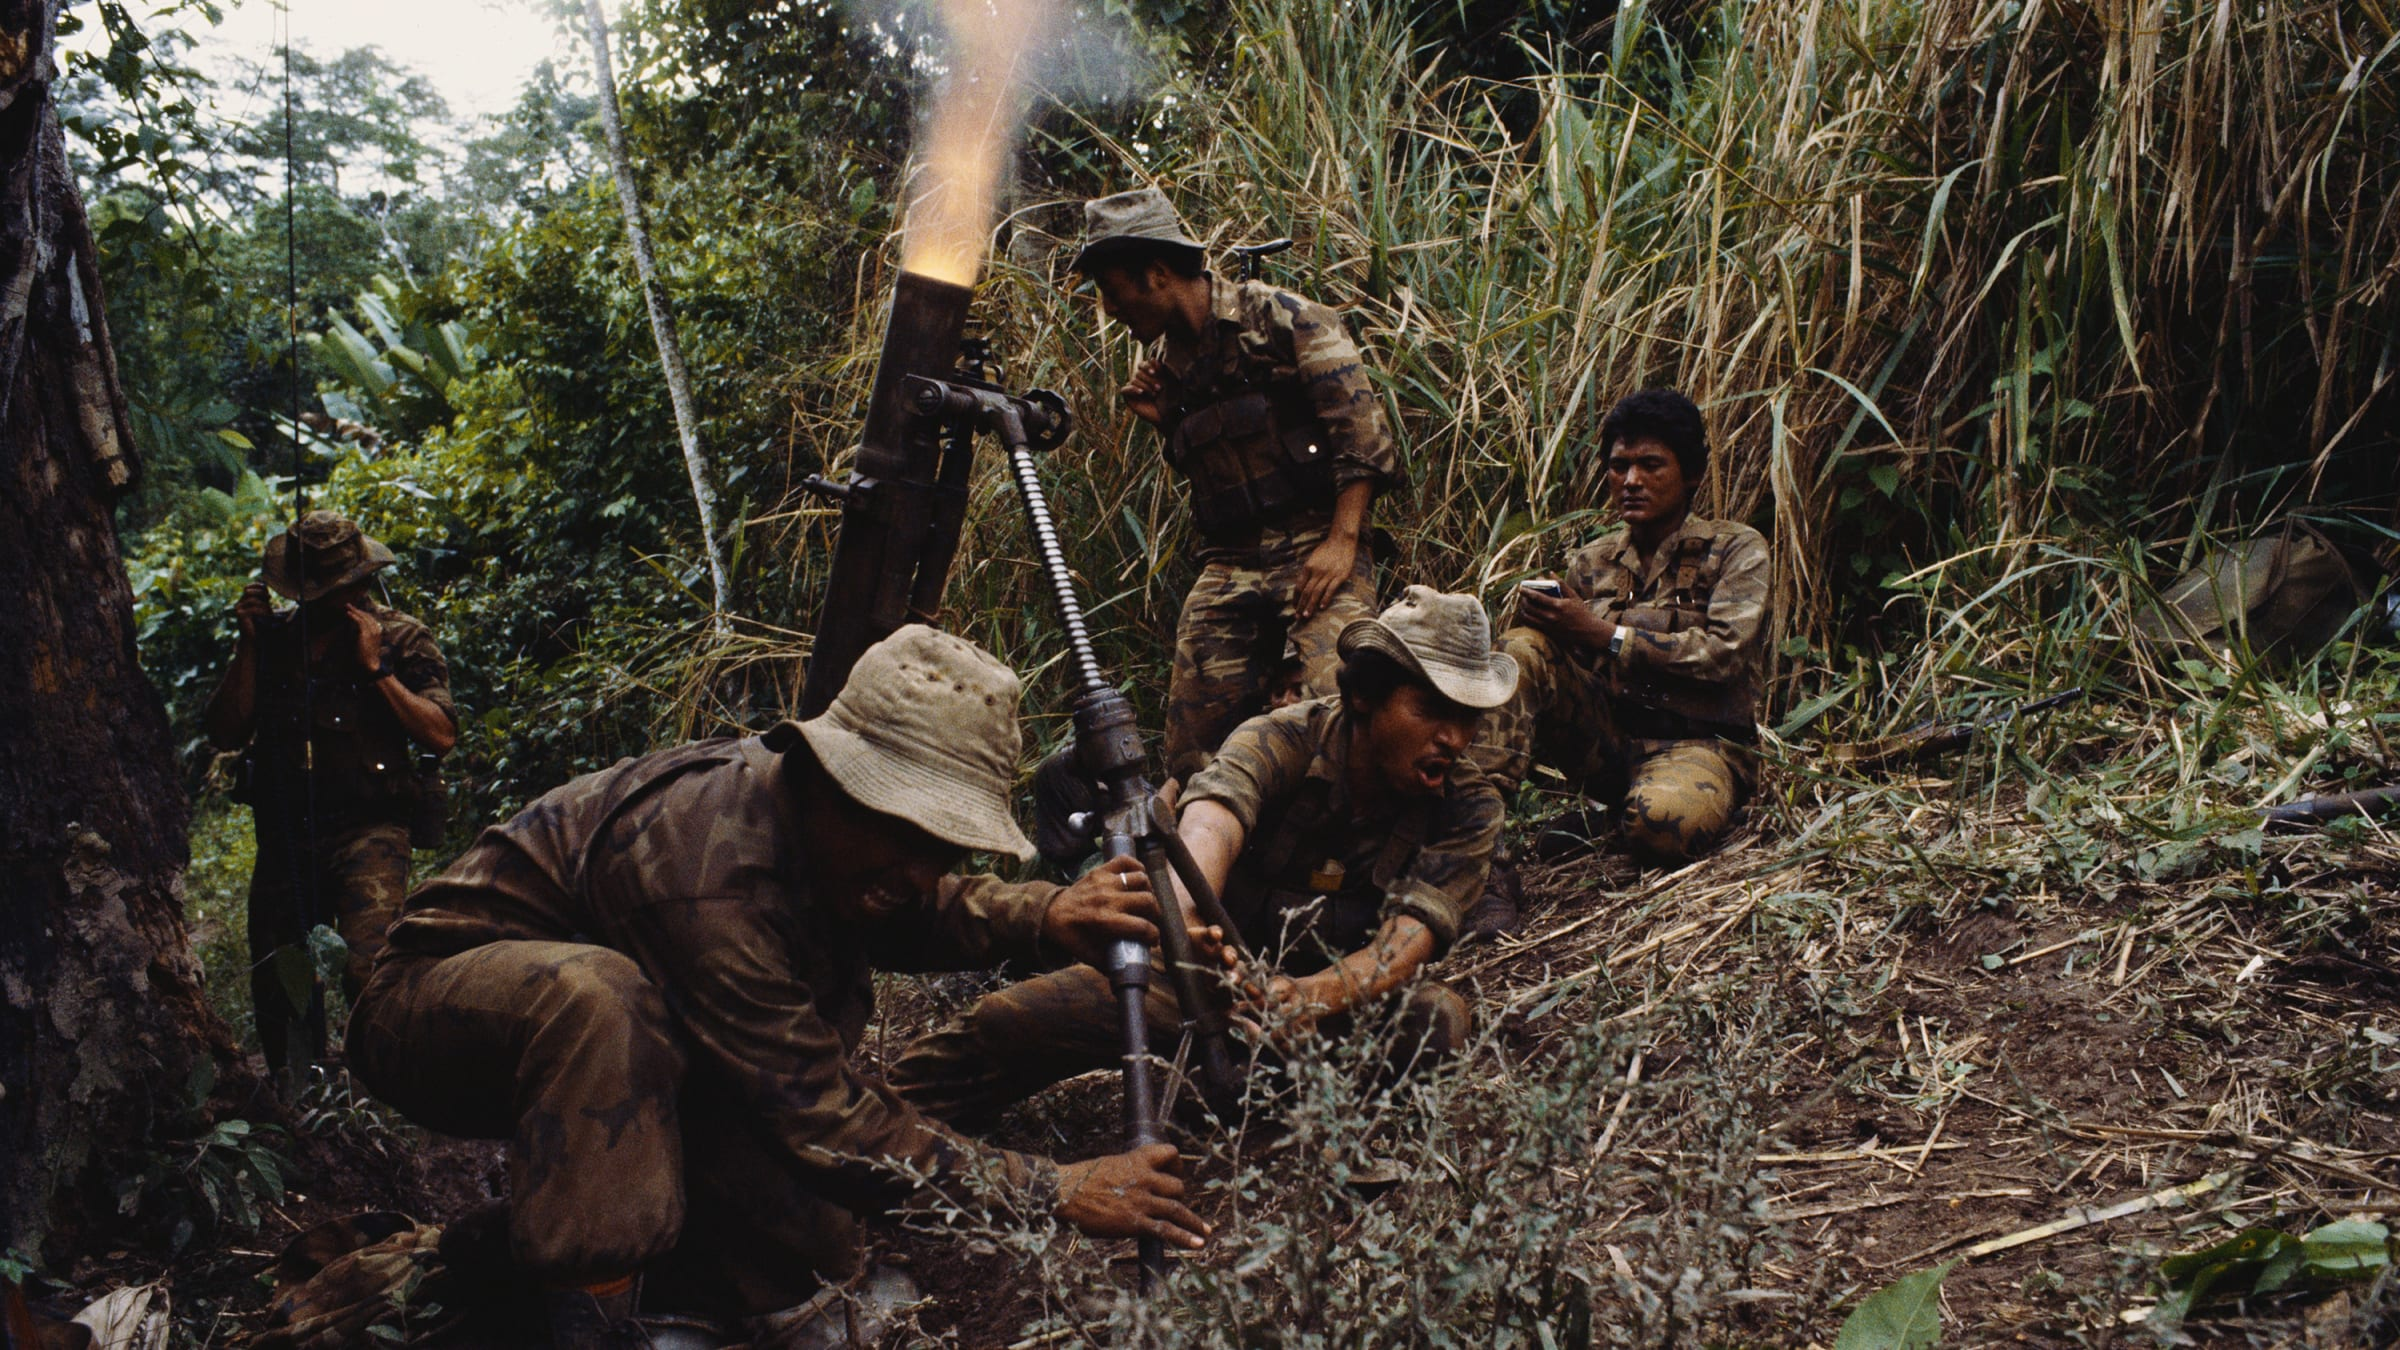 Central America's Wars of the '80s Still Haunt the U.S. 40 Years After the Sandinistas' Victory